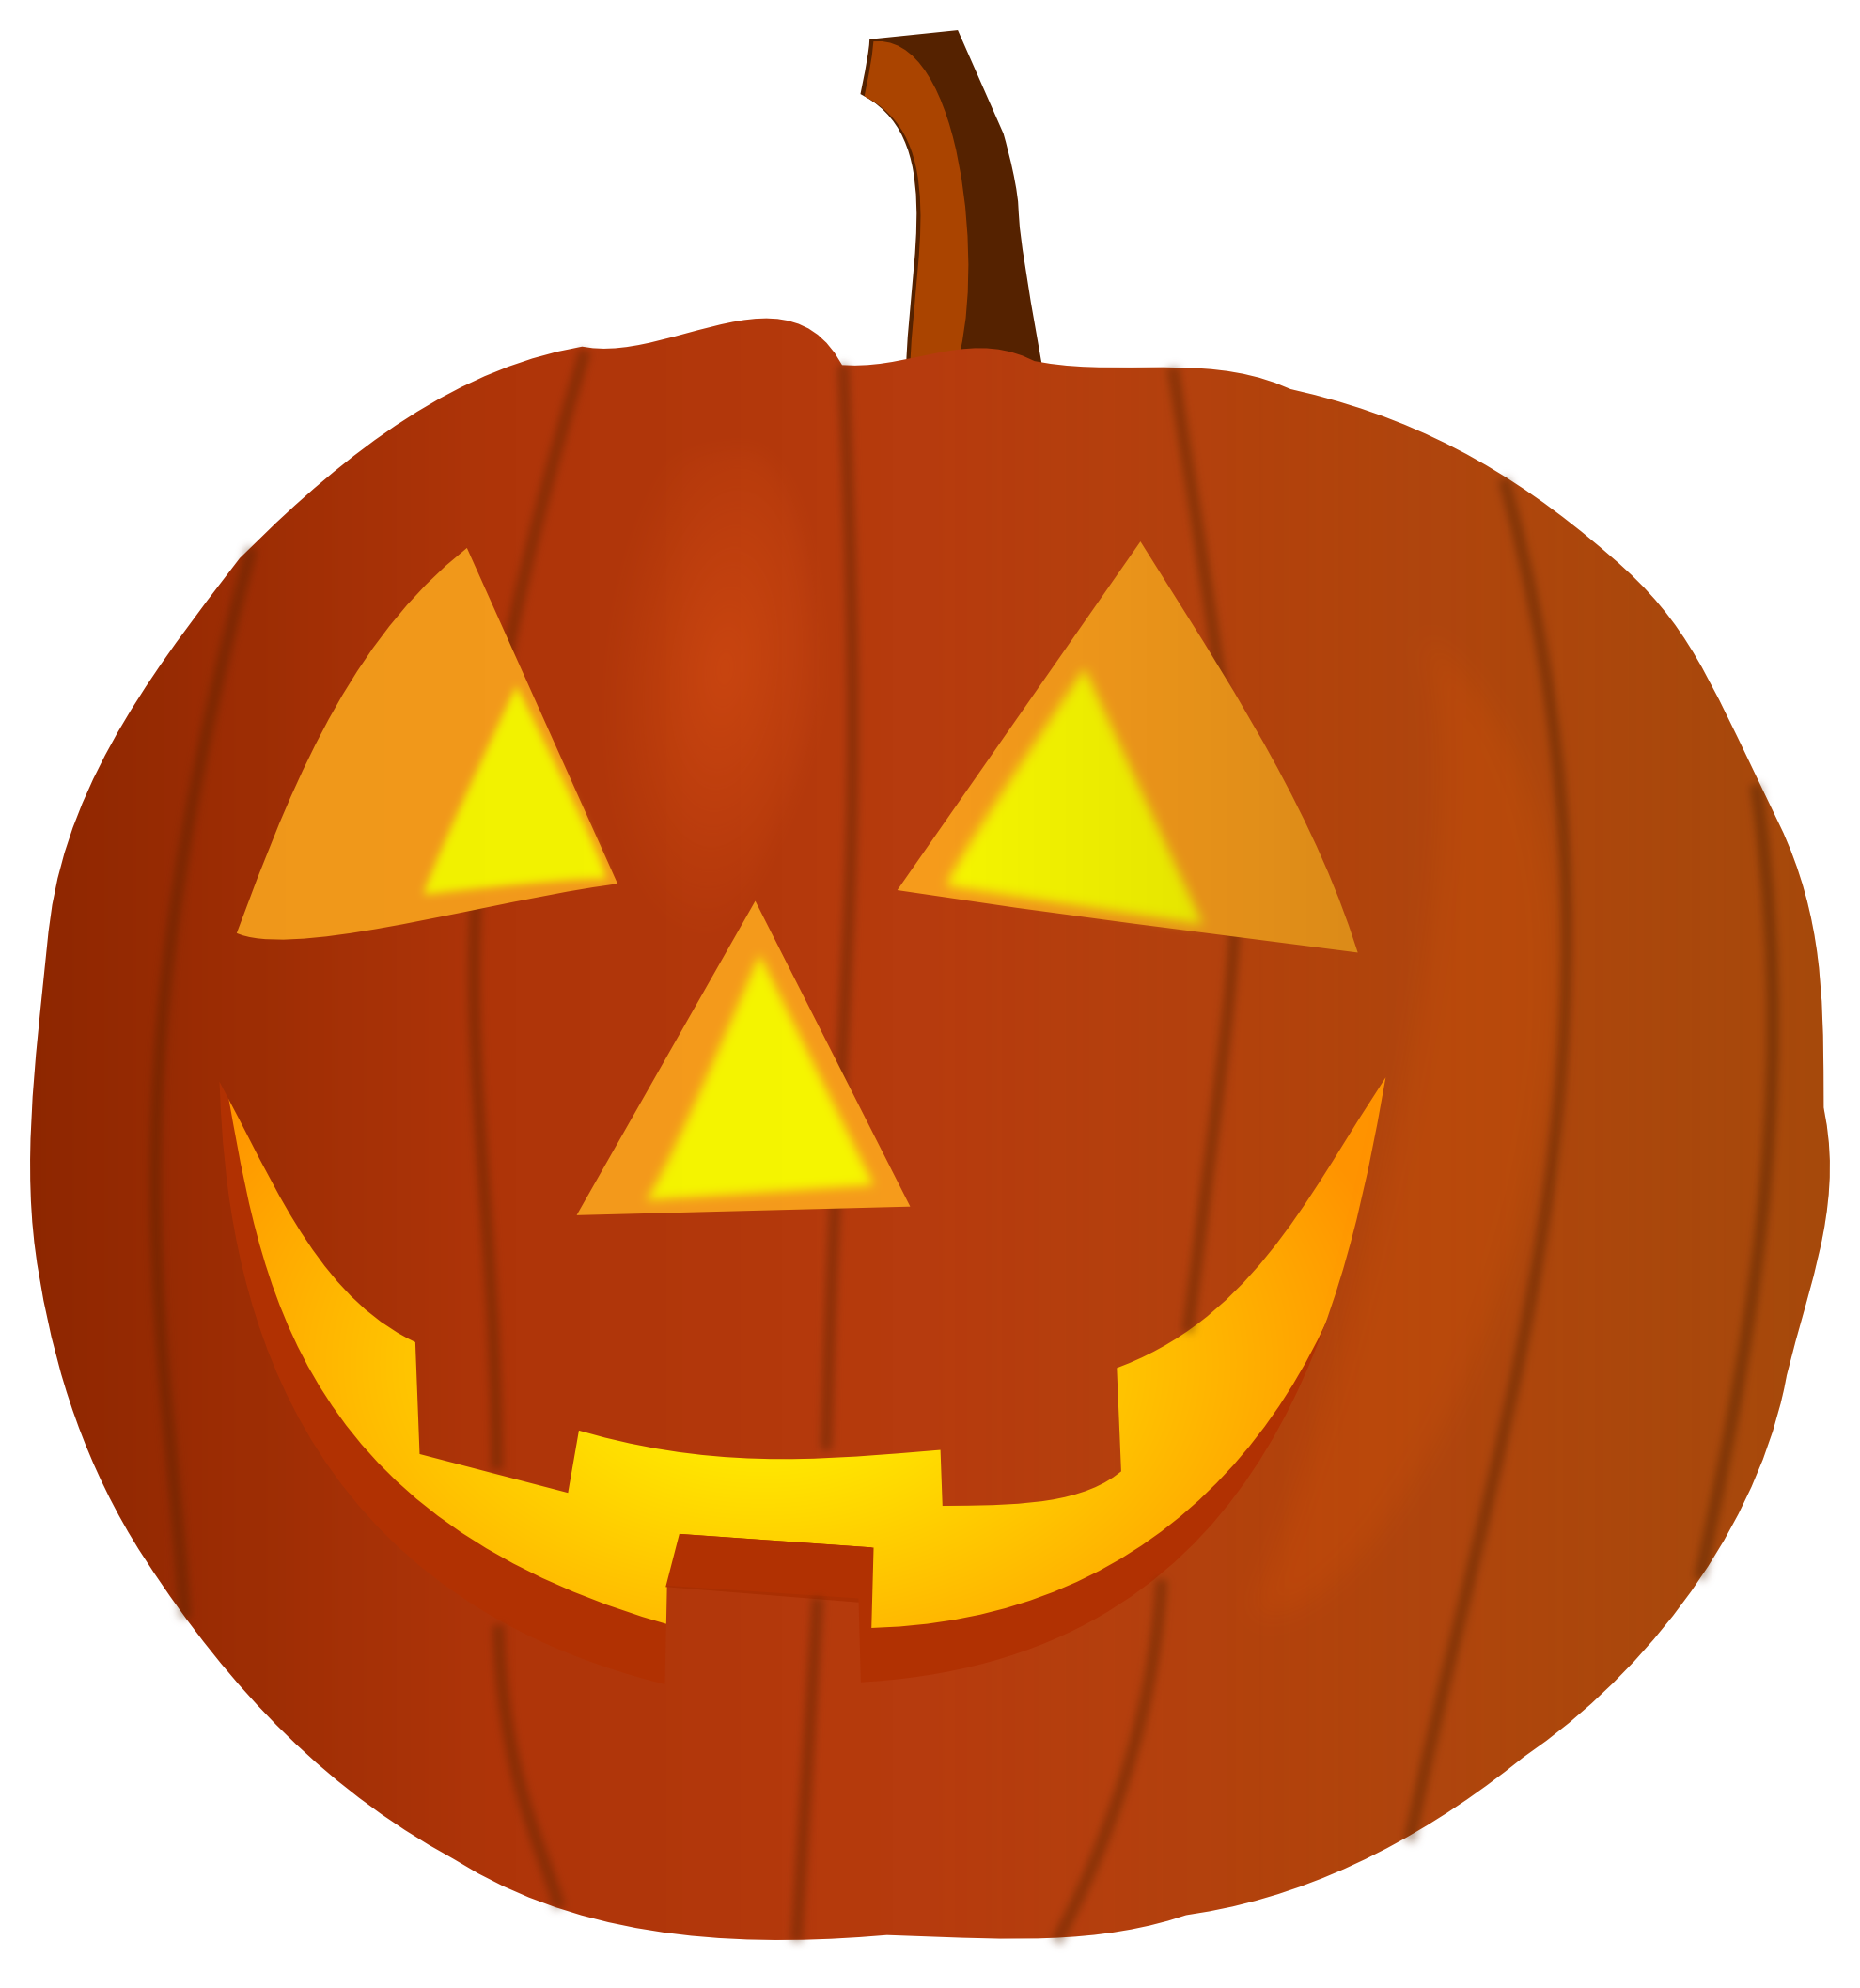 png black and white download All saints pumpkin carving clipart